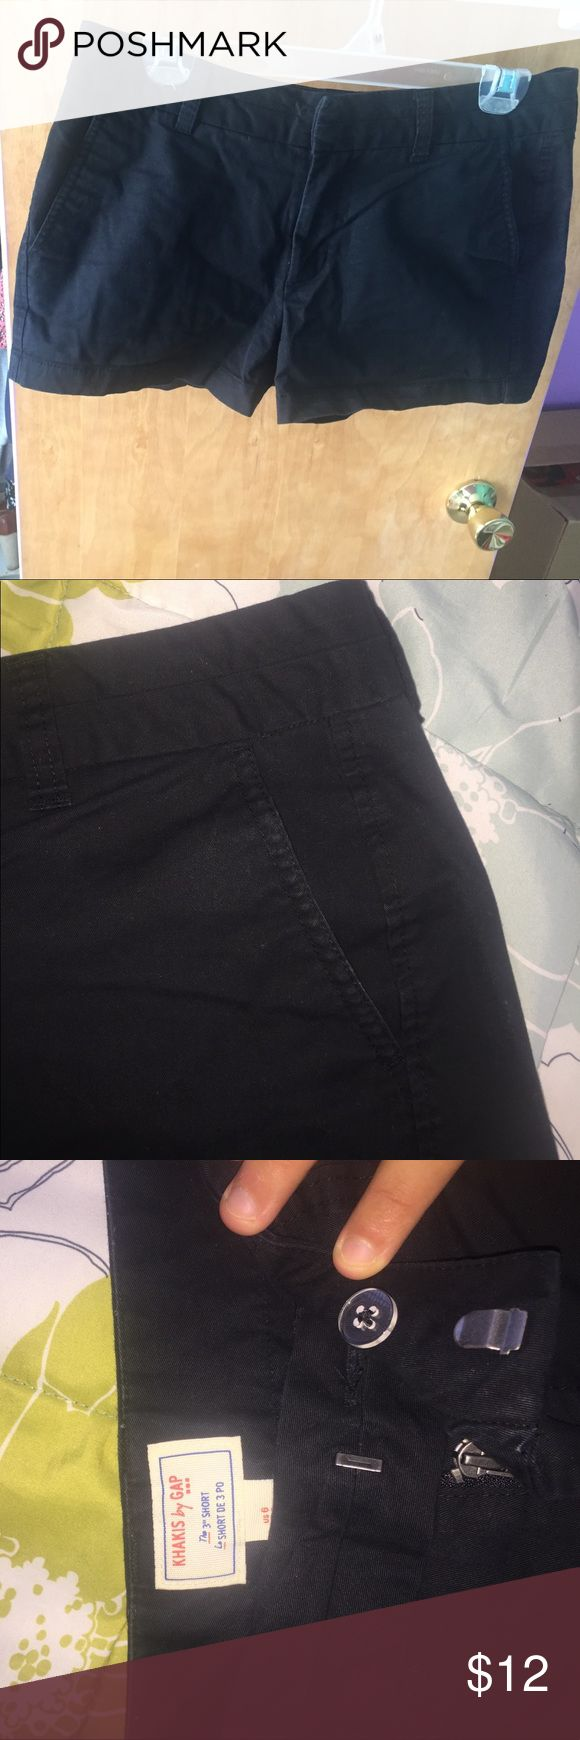 "Black Khaki shorts GAP 3"" inseam. Black khaki shorts in great condition. Size 6. Metal clasp and zipper, back pockets have buttons. GAP Shorts"